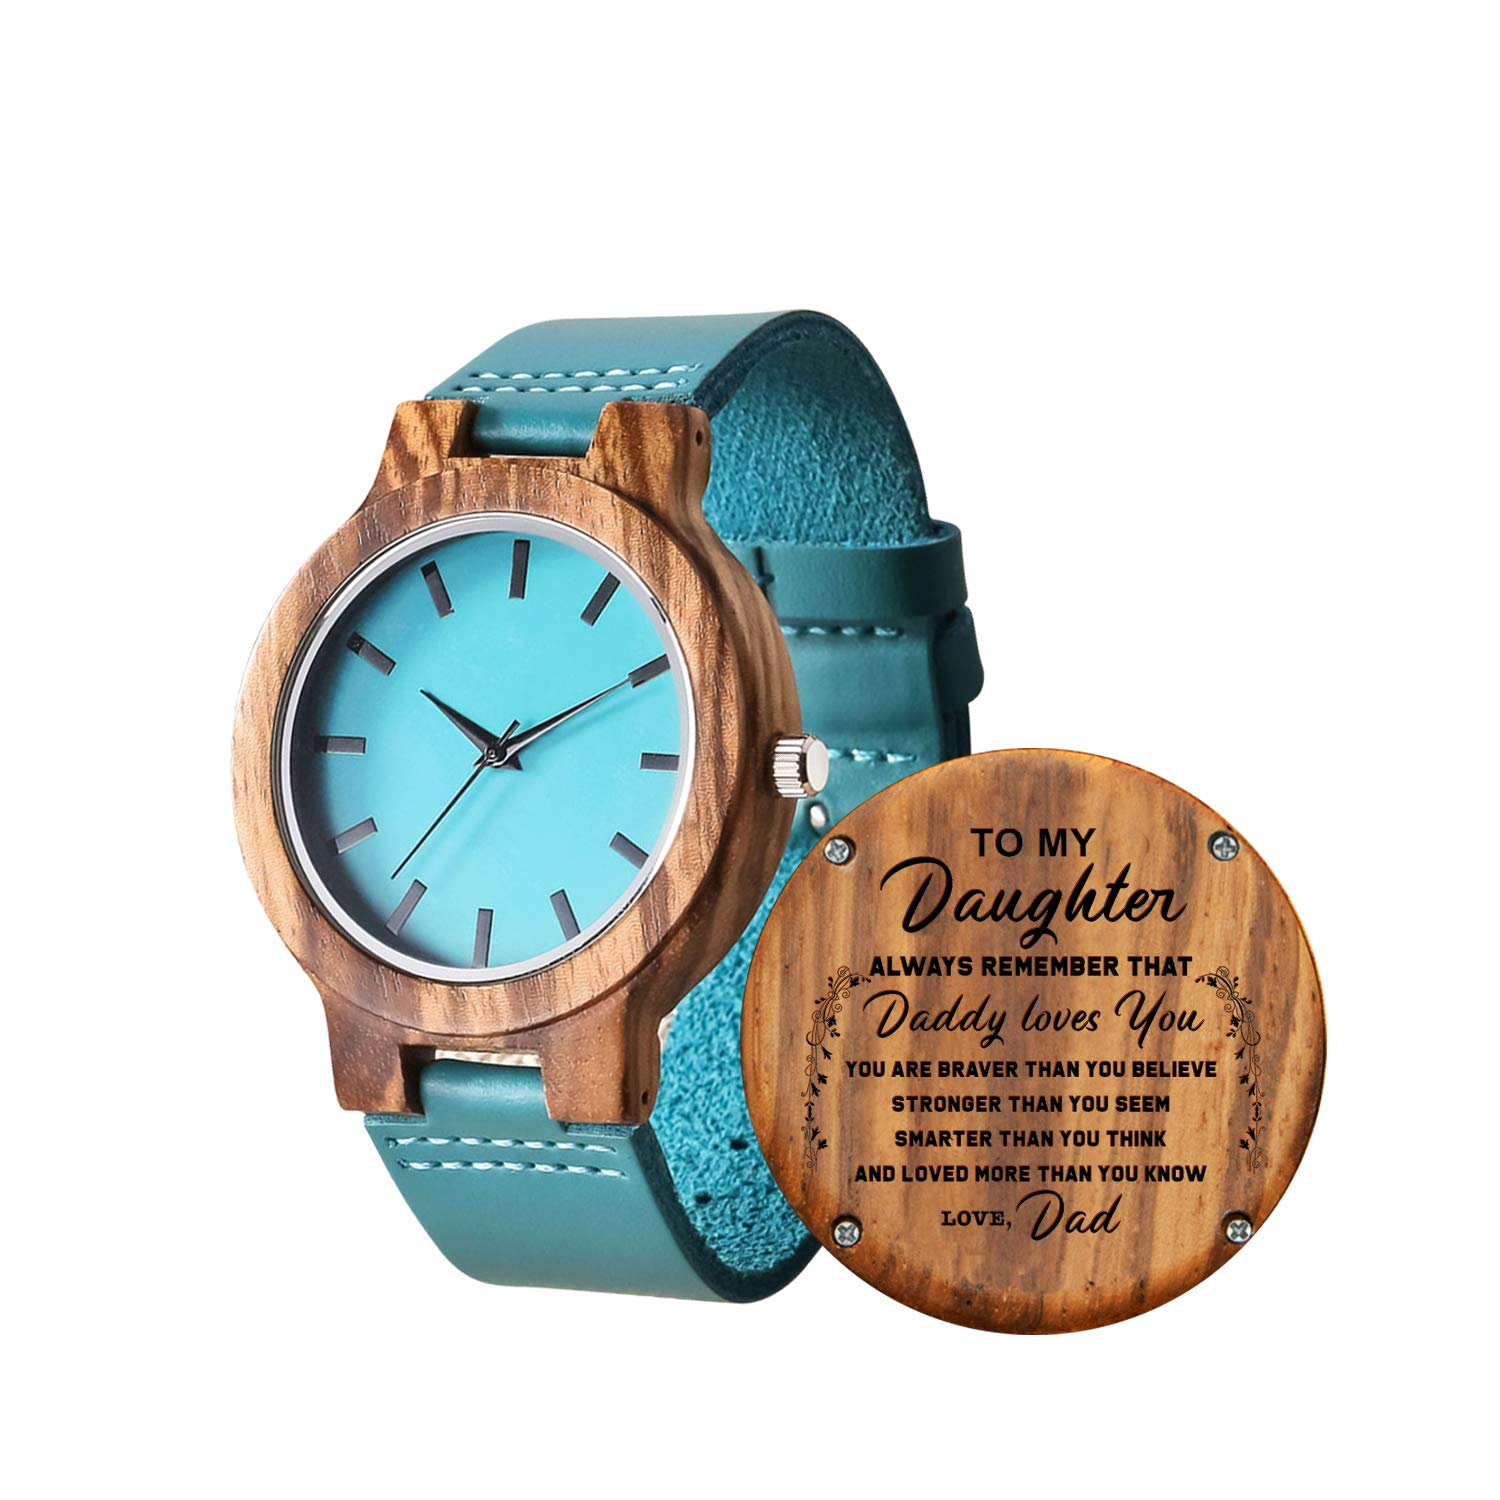 Personalized Wooden Watch for Daughter, Engraved ''to My Daughter'' Wood Watch, Anniversary Christmas Gifts for Daughter, Valentine's Gifts for Wife (Dad to Daughter) by KWOOD